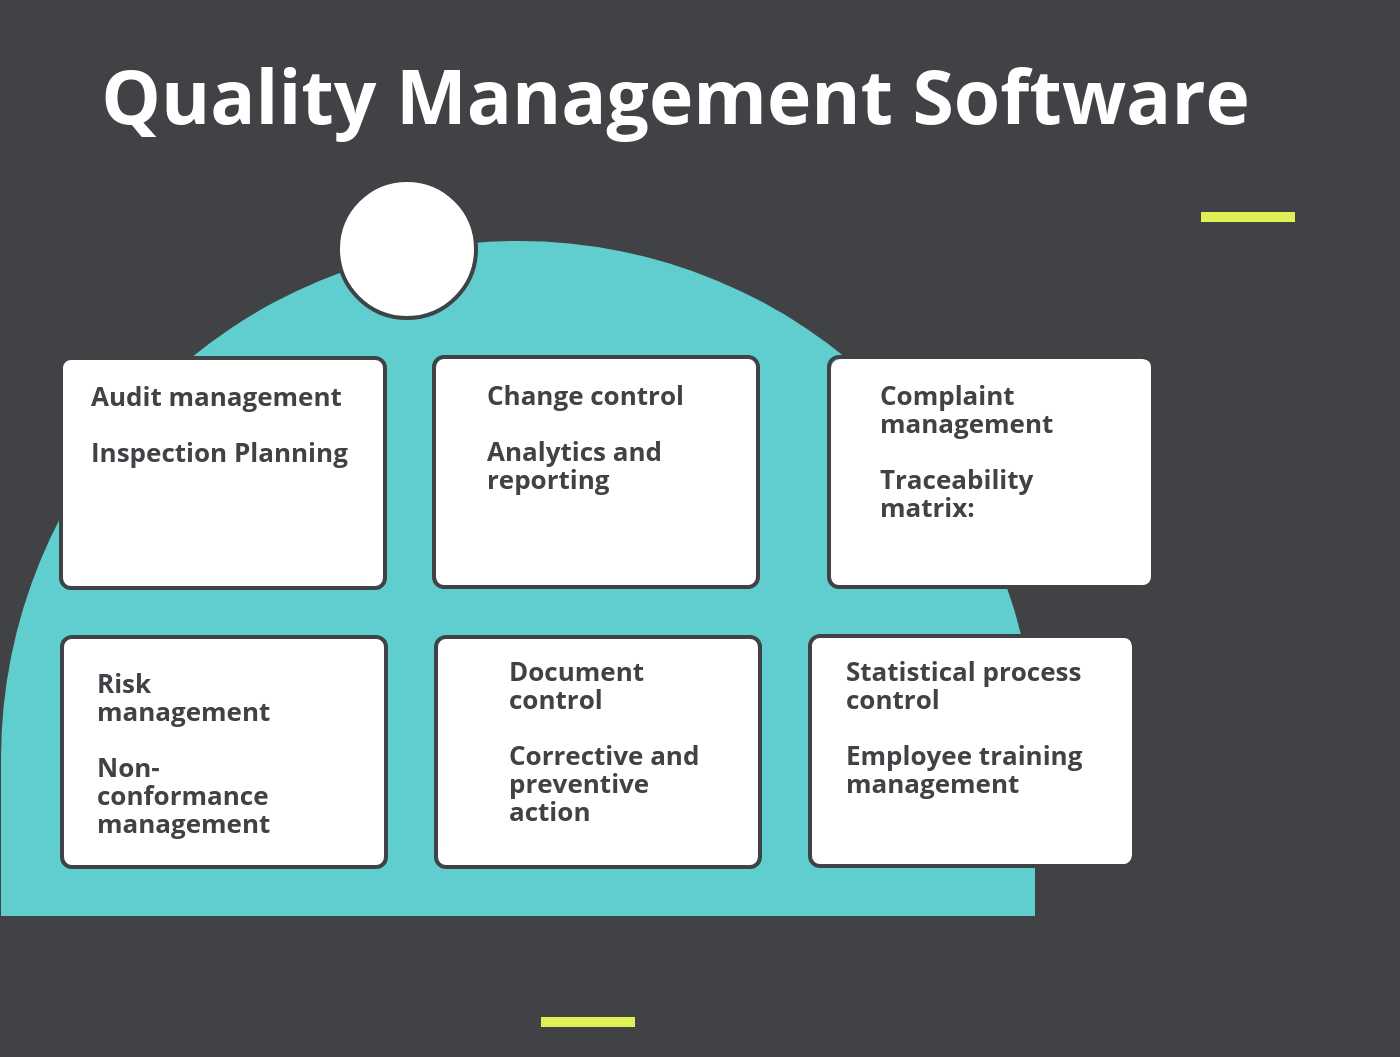 How To Select The Best Quality Management Software In 2020 Reviews Features Pricing Comparison Pat Research B2b Reviews Buying Guides Best Practices Management Statistical Process Control Employee Training